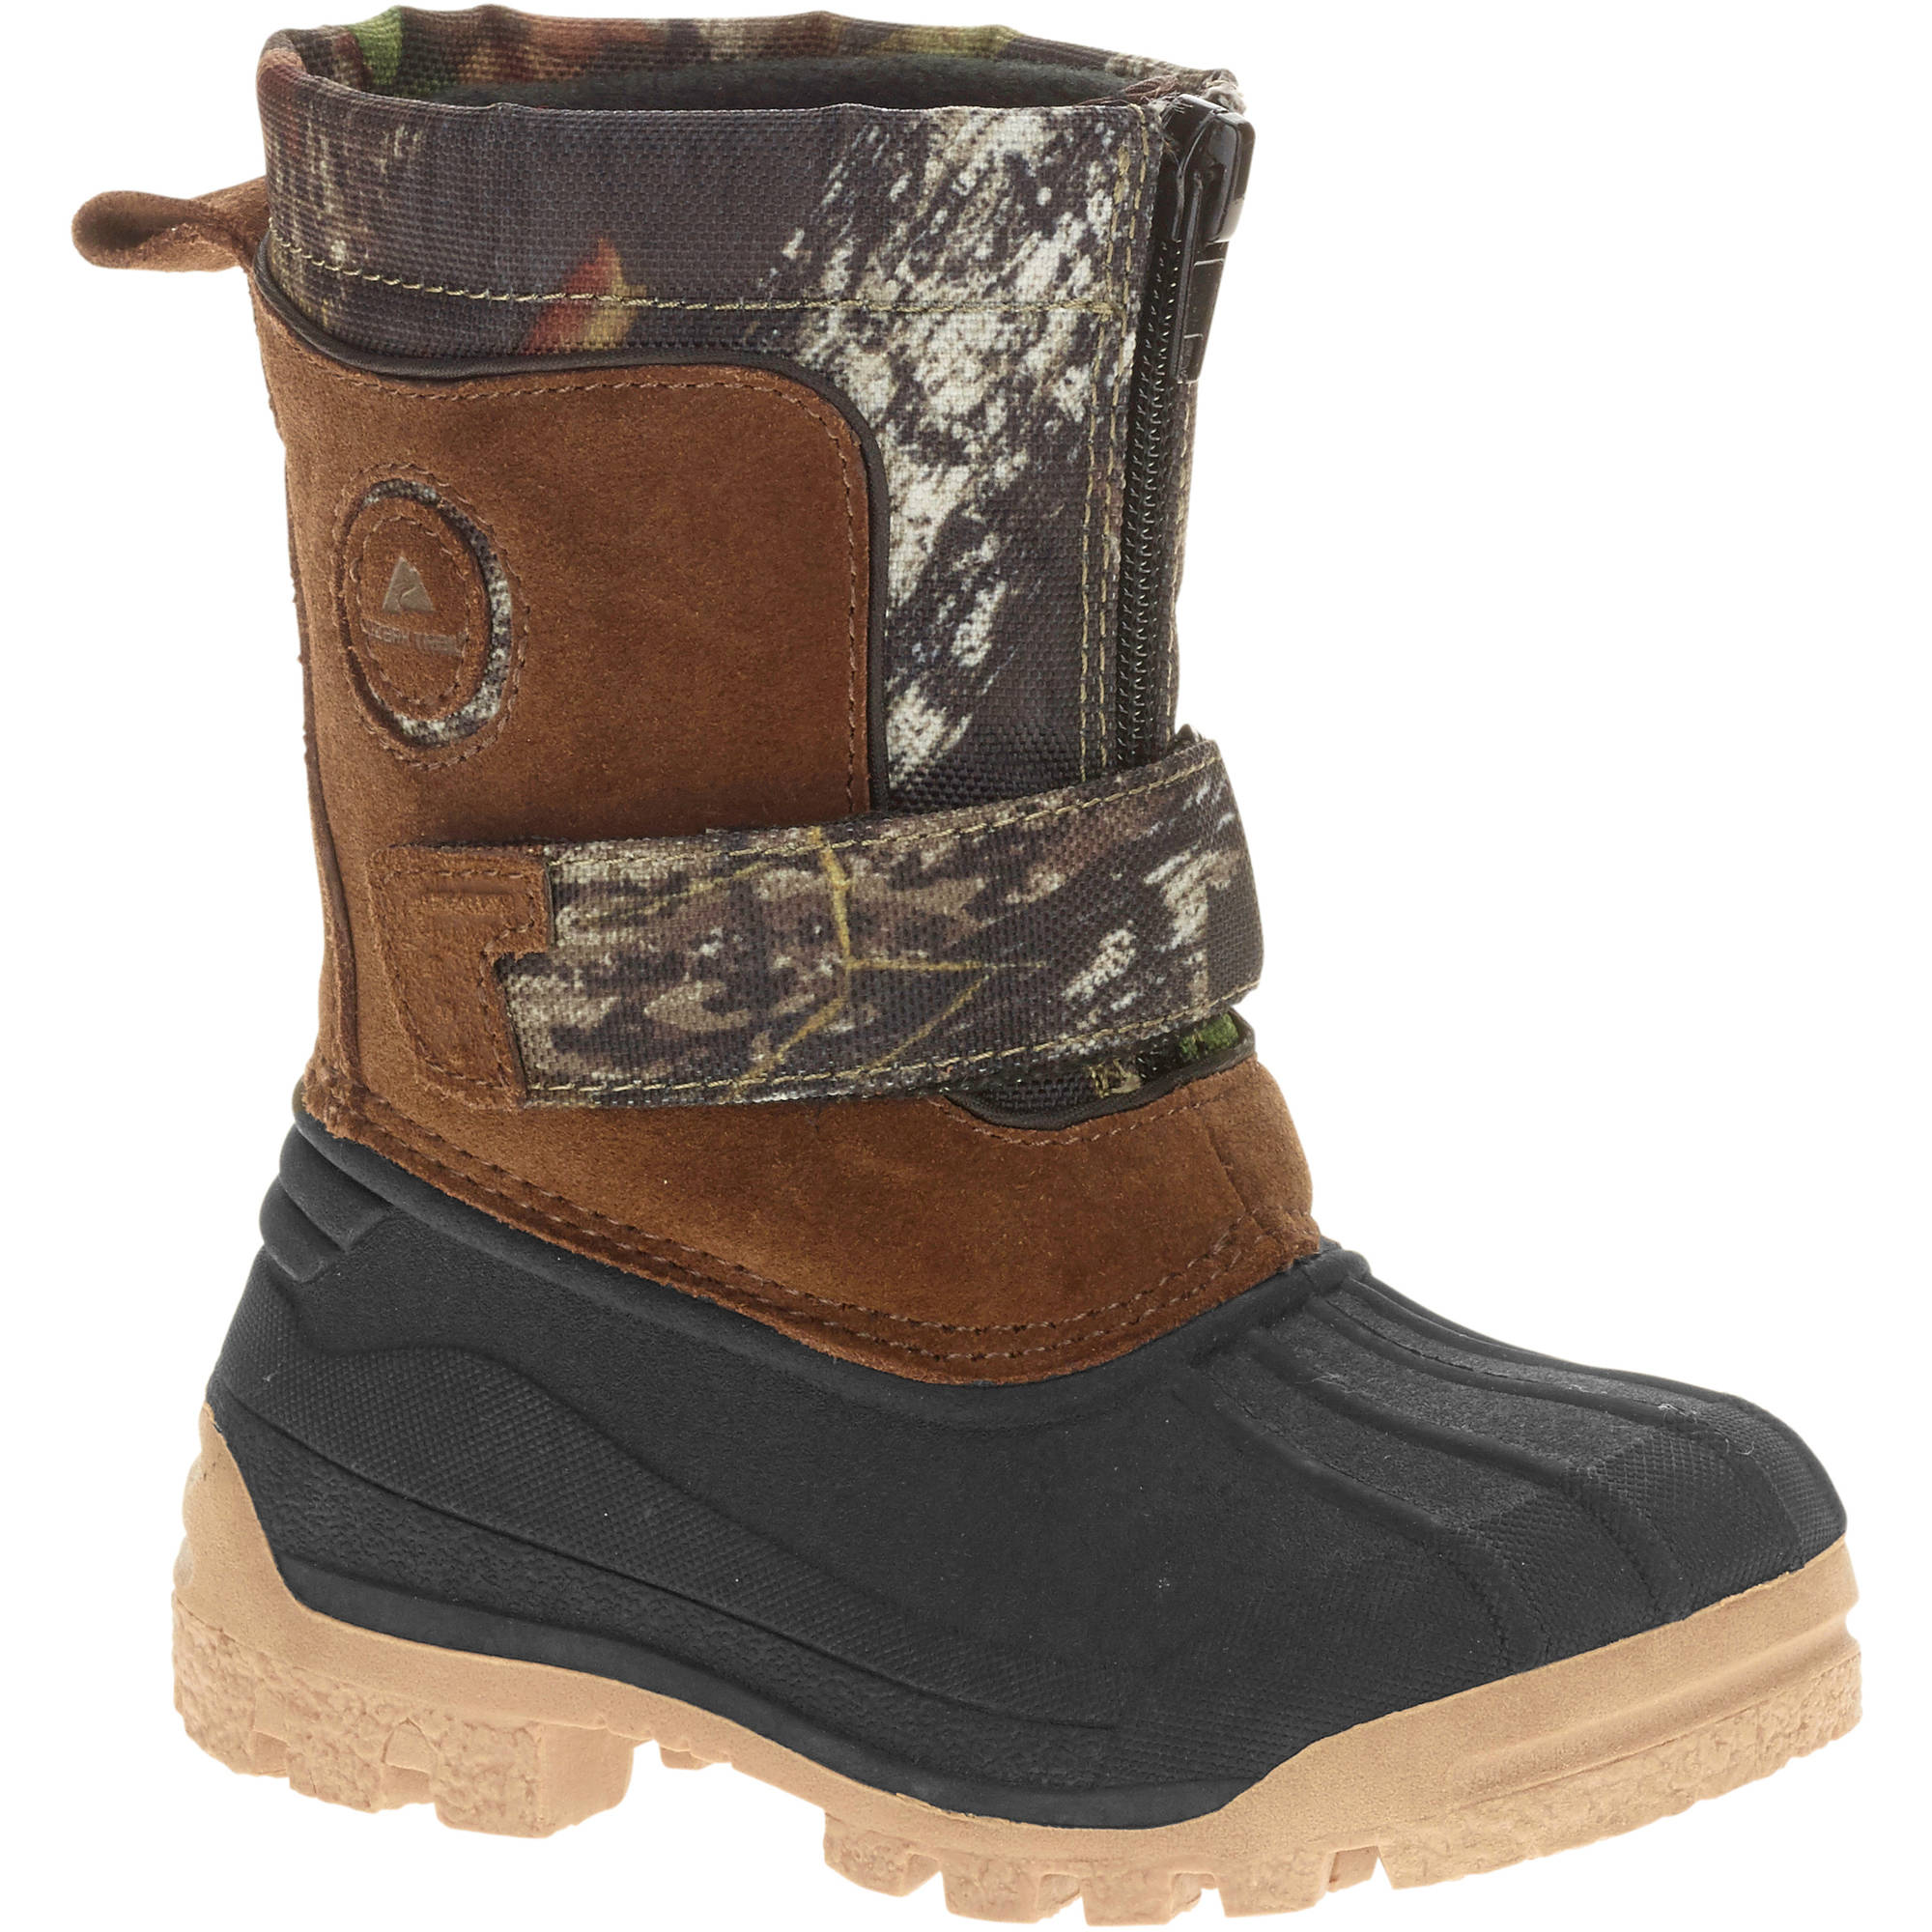 Ozark Trail Toddler Boy's Camo Zip-up Winter Boot